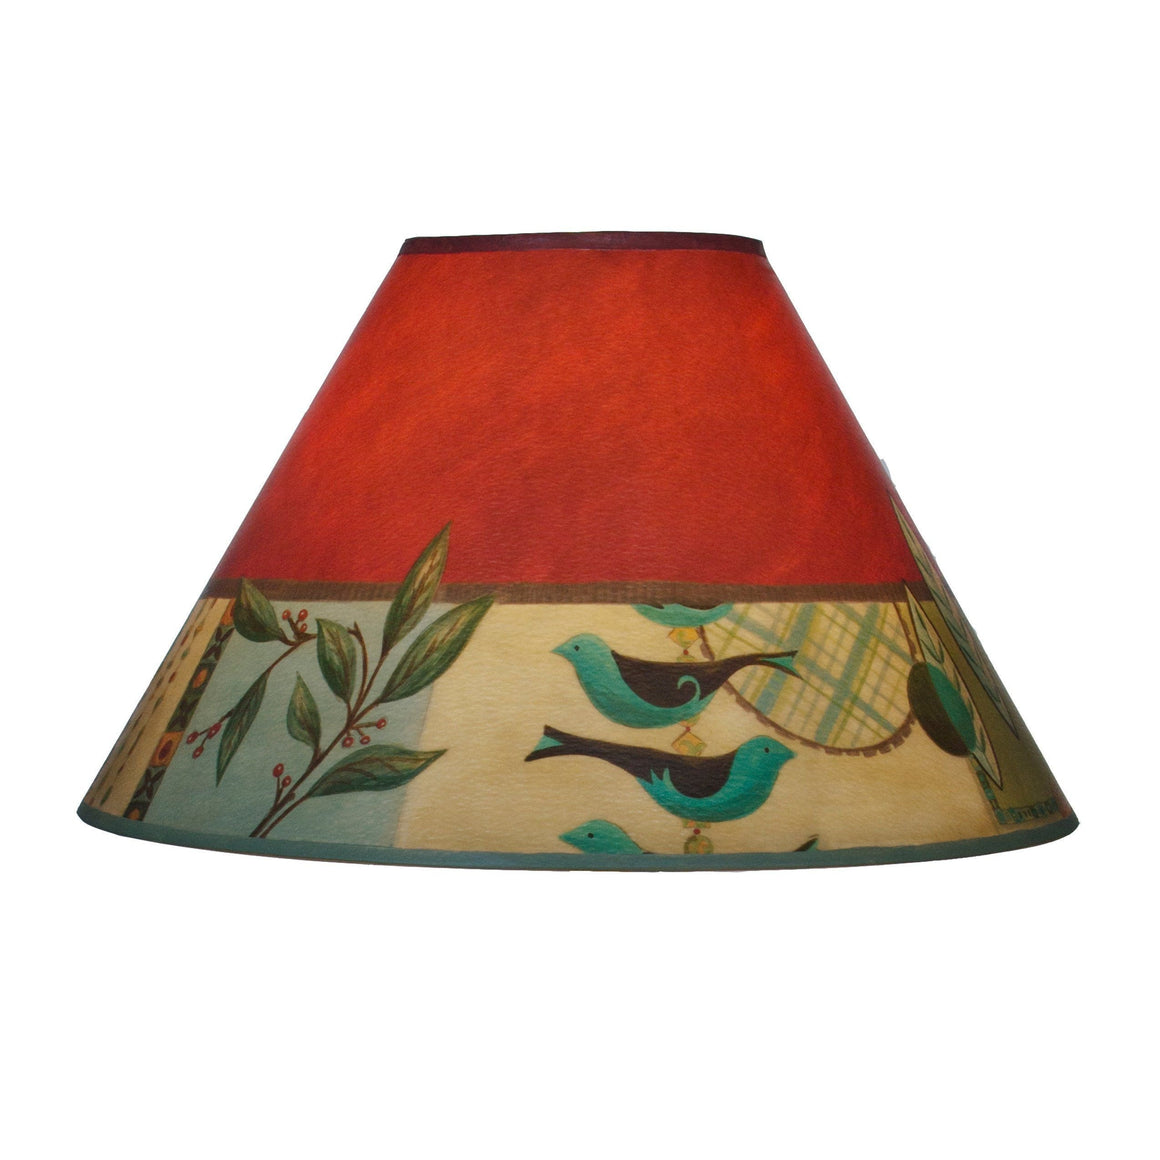 New Capri Medium Conical Lamp Shade